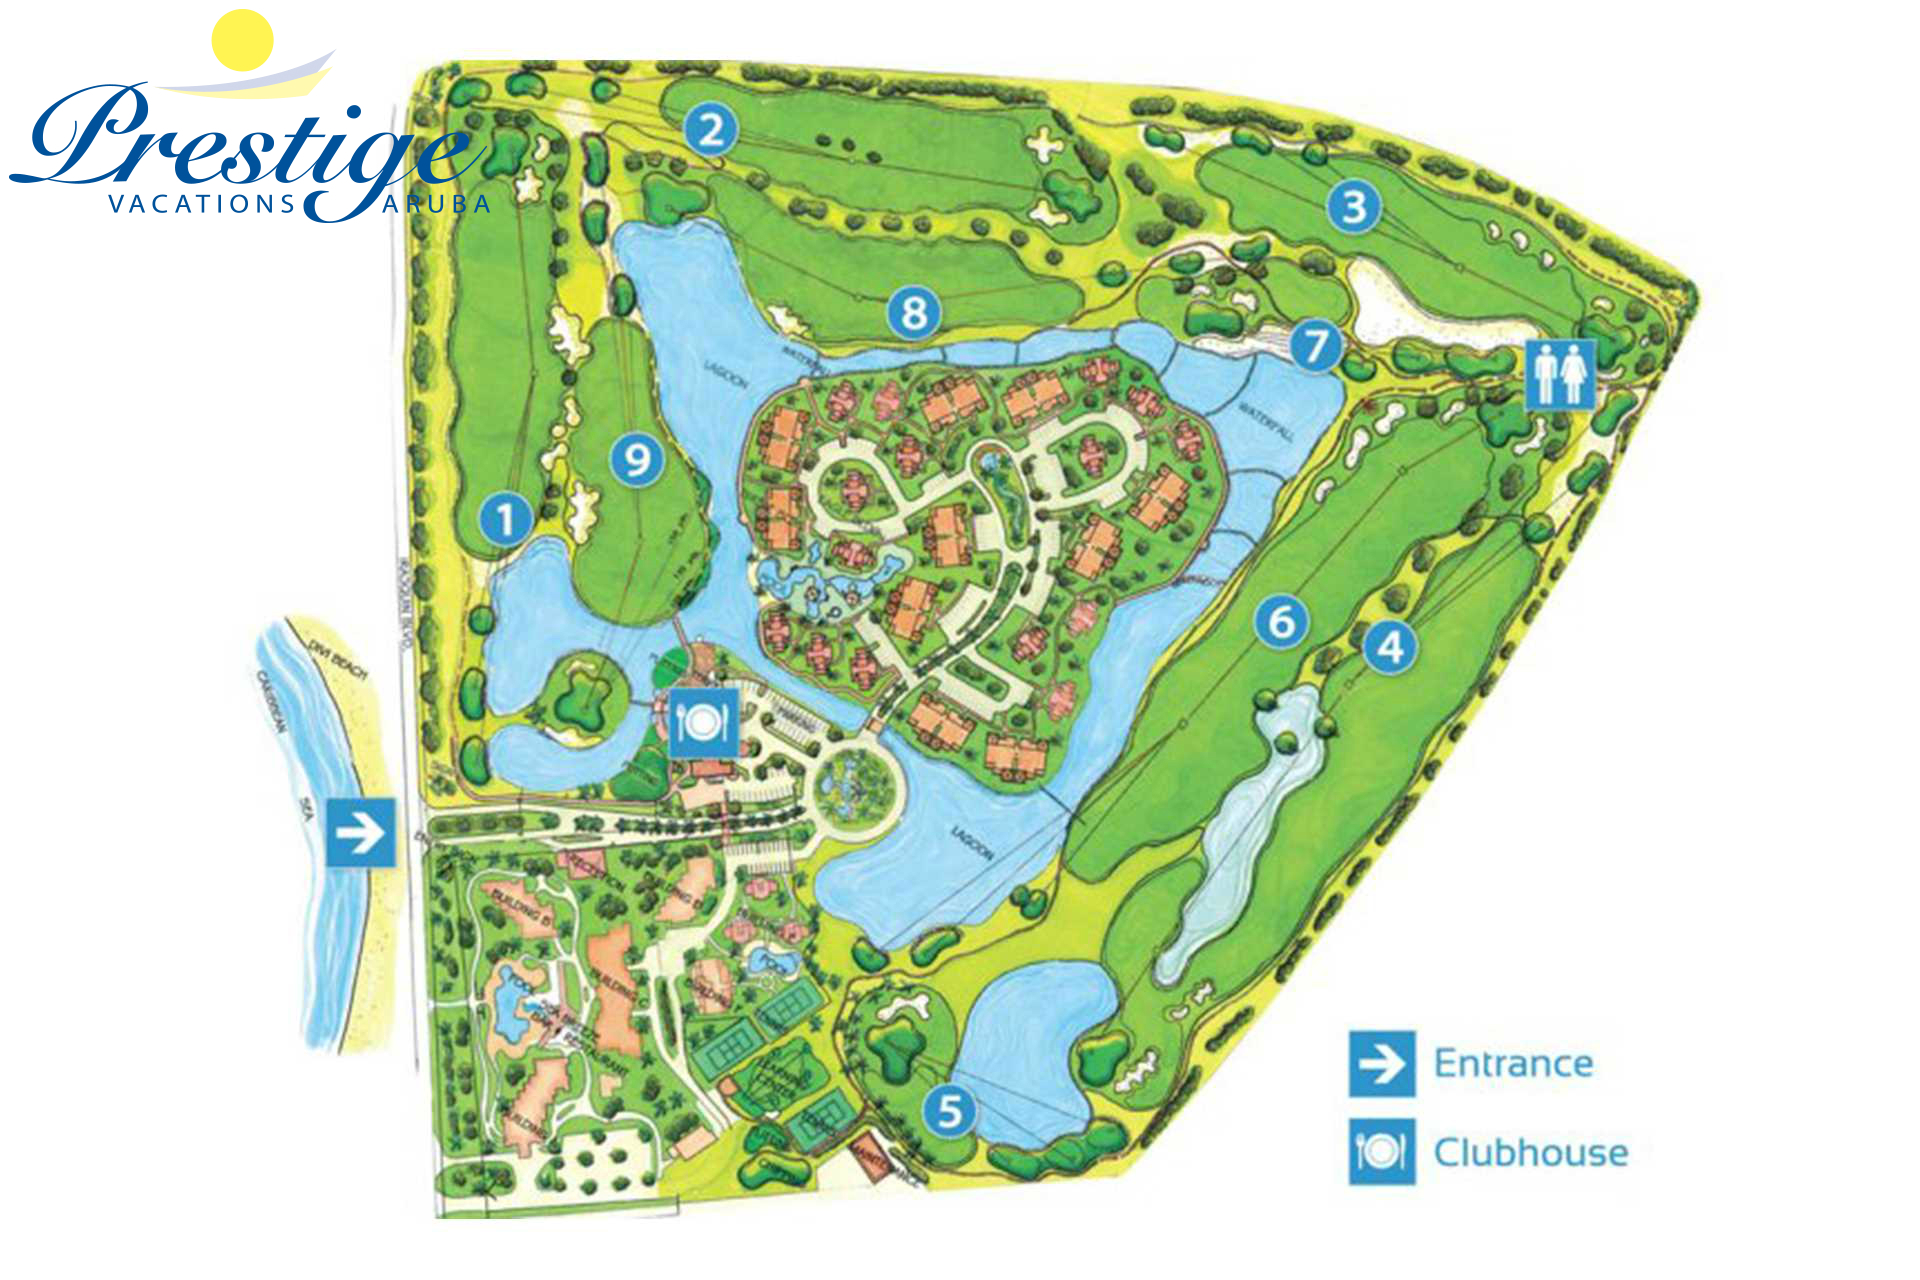 The Links at Divi Aruba golf course map